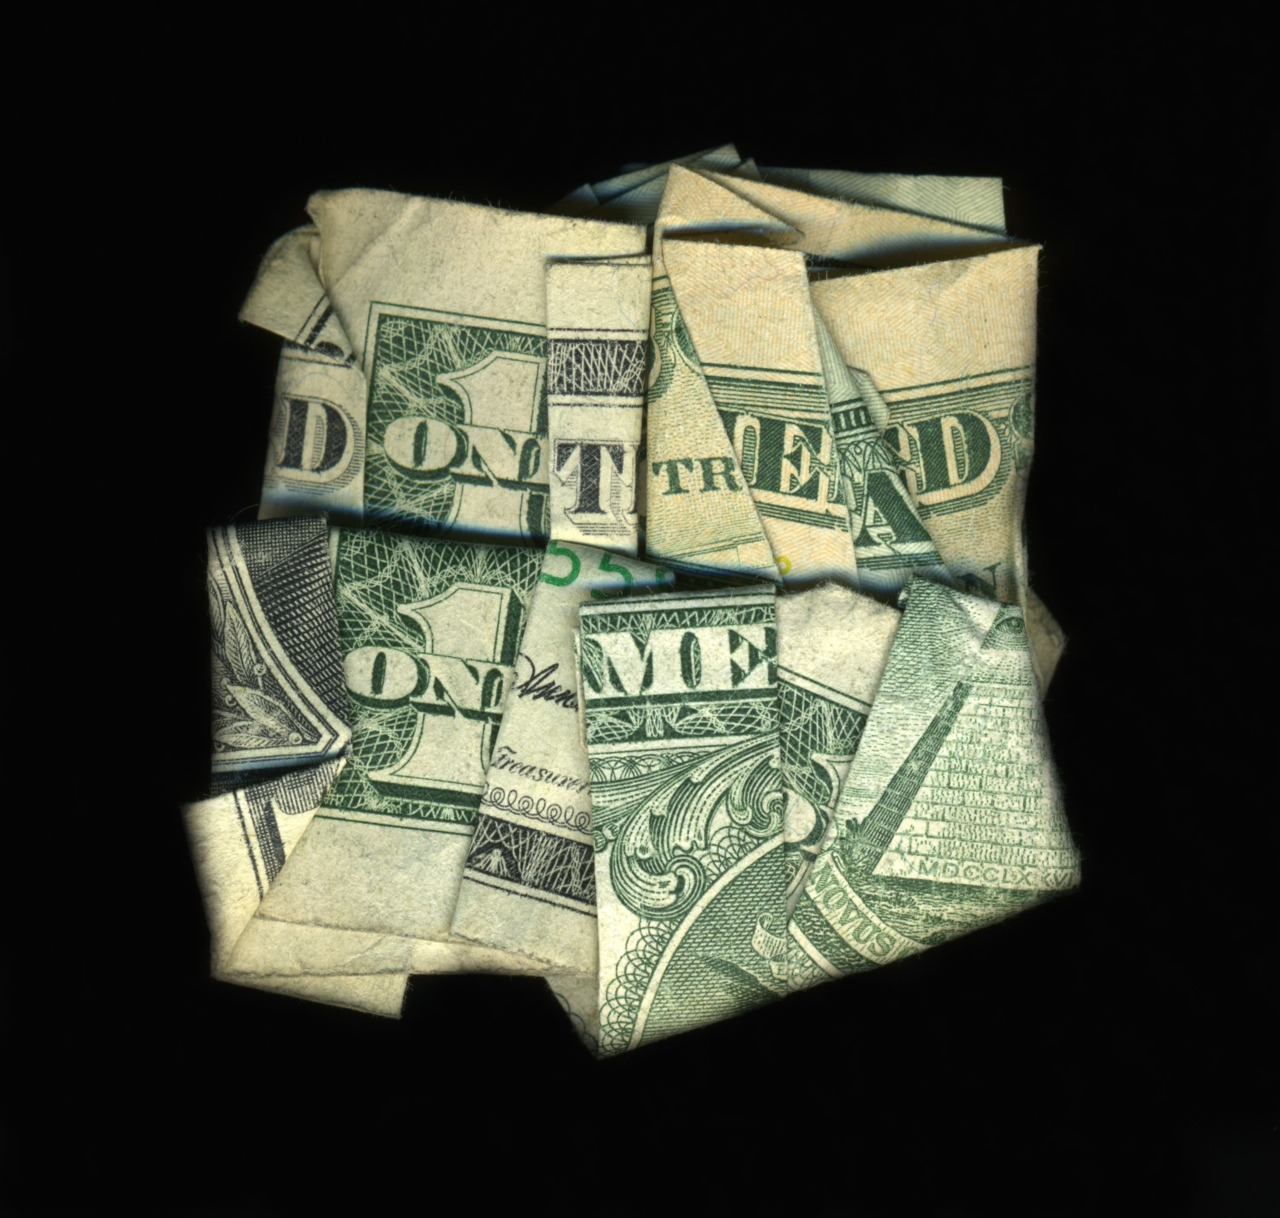 Via  wnyc :     Dan Tague  folds dollar bills up  to make them say stuff. There's an  exhibit of his work  in NYC this week.   — Jody Avirgan